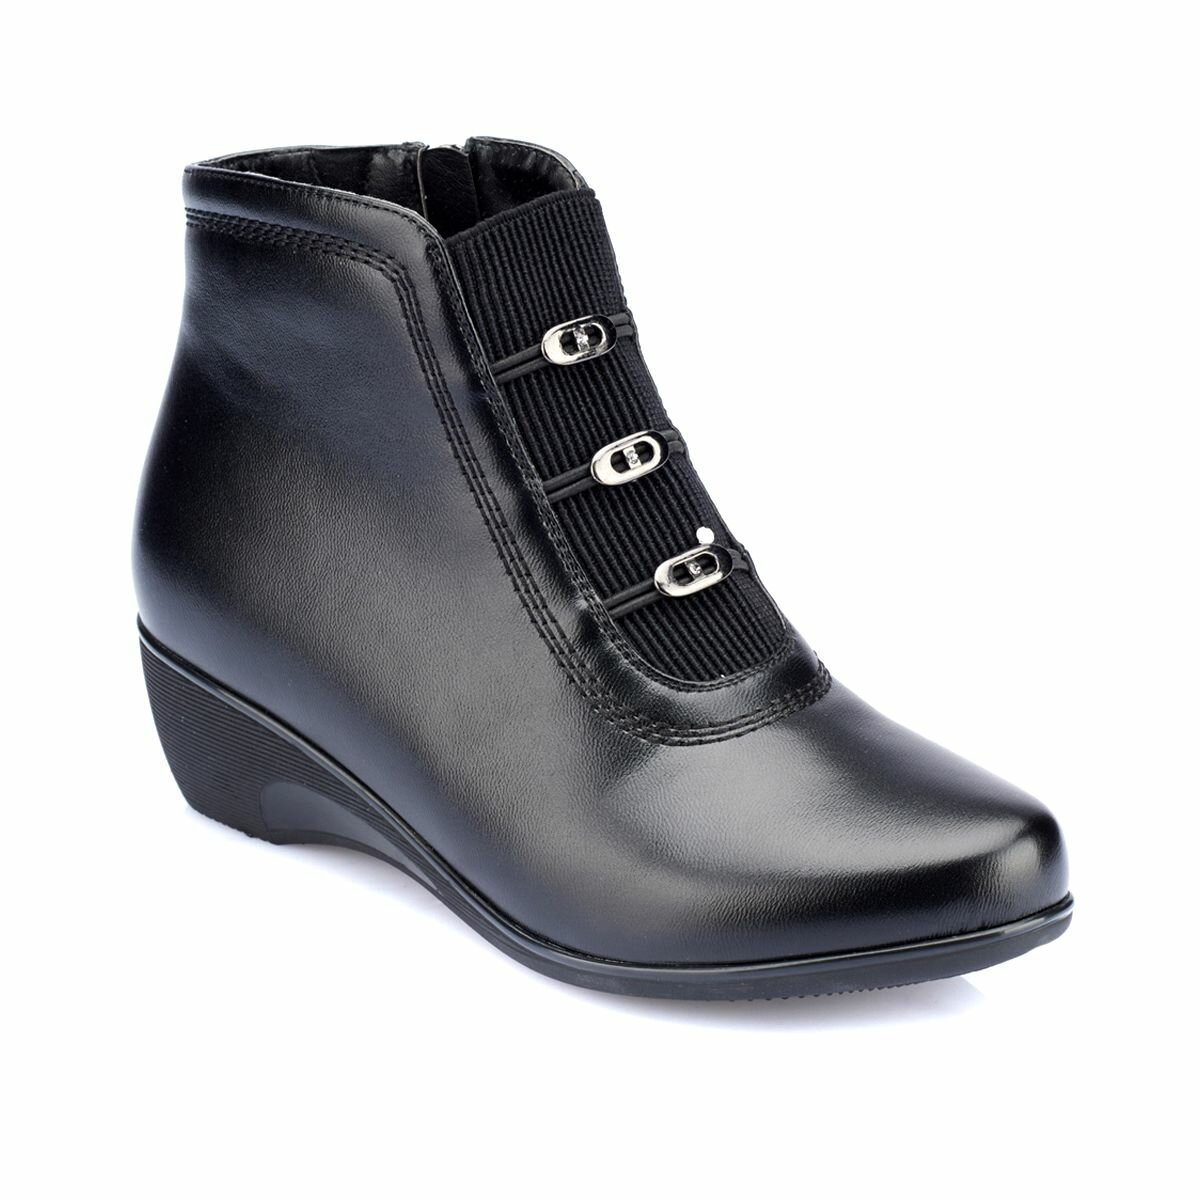 FLO 82.150401.Z Black Women Boots Polaris